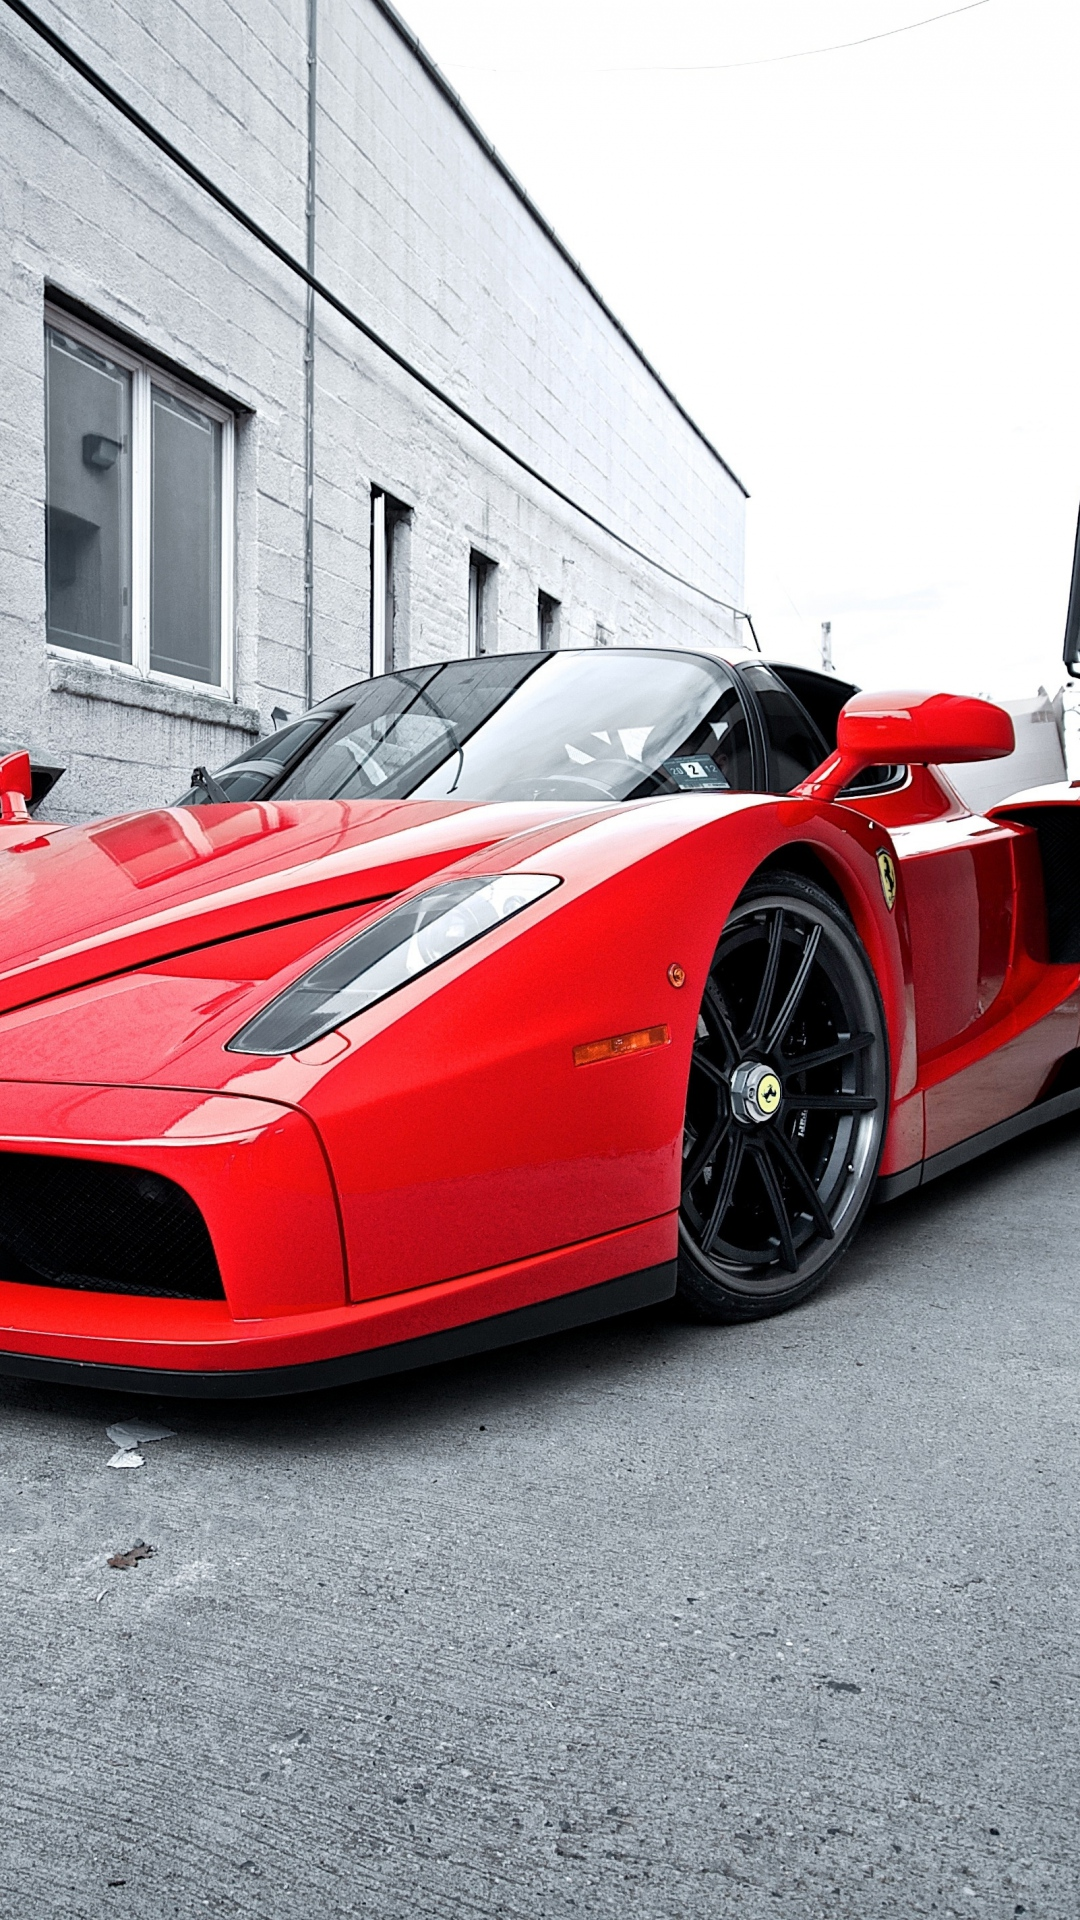 3d Wallpaper For Htc One M8 Red Ferrari Enzo Best Htc One Wallpapers Free And Easy